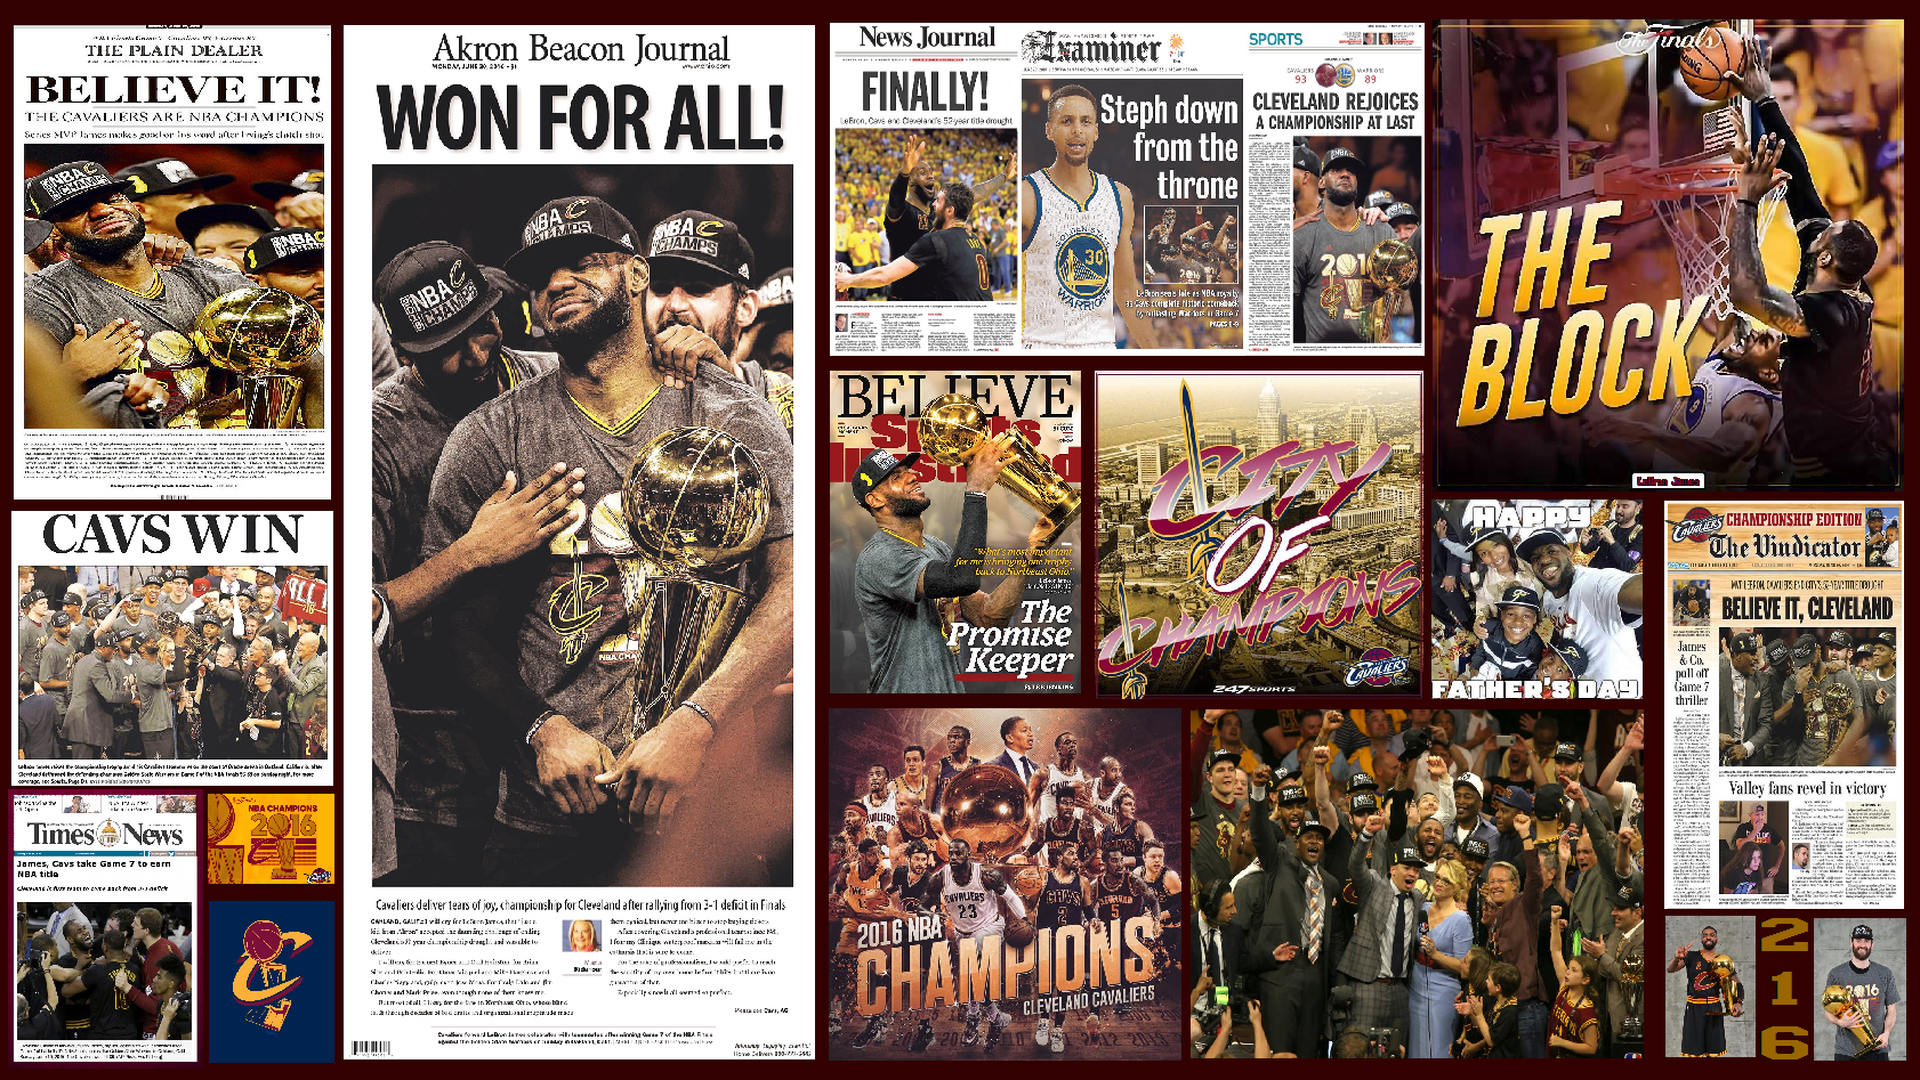 Cleveland Cavaliers Images Cleveland Cavaliers 2016 Nba Champions Hd